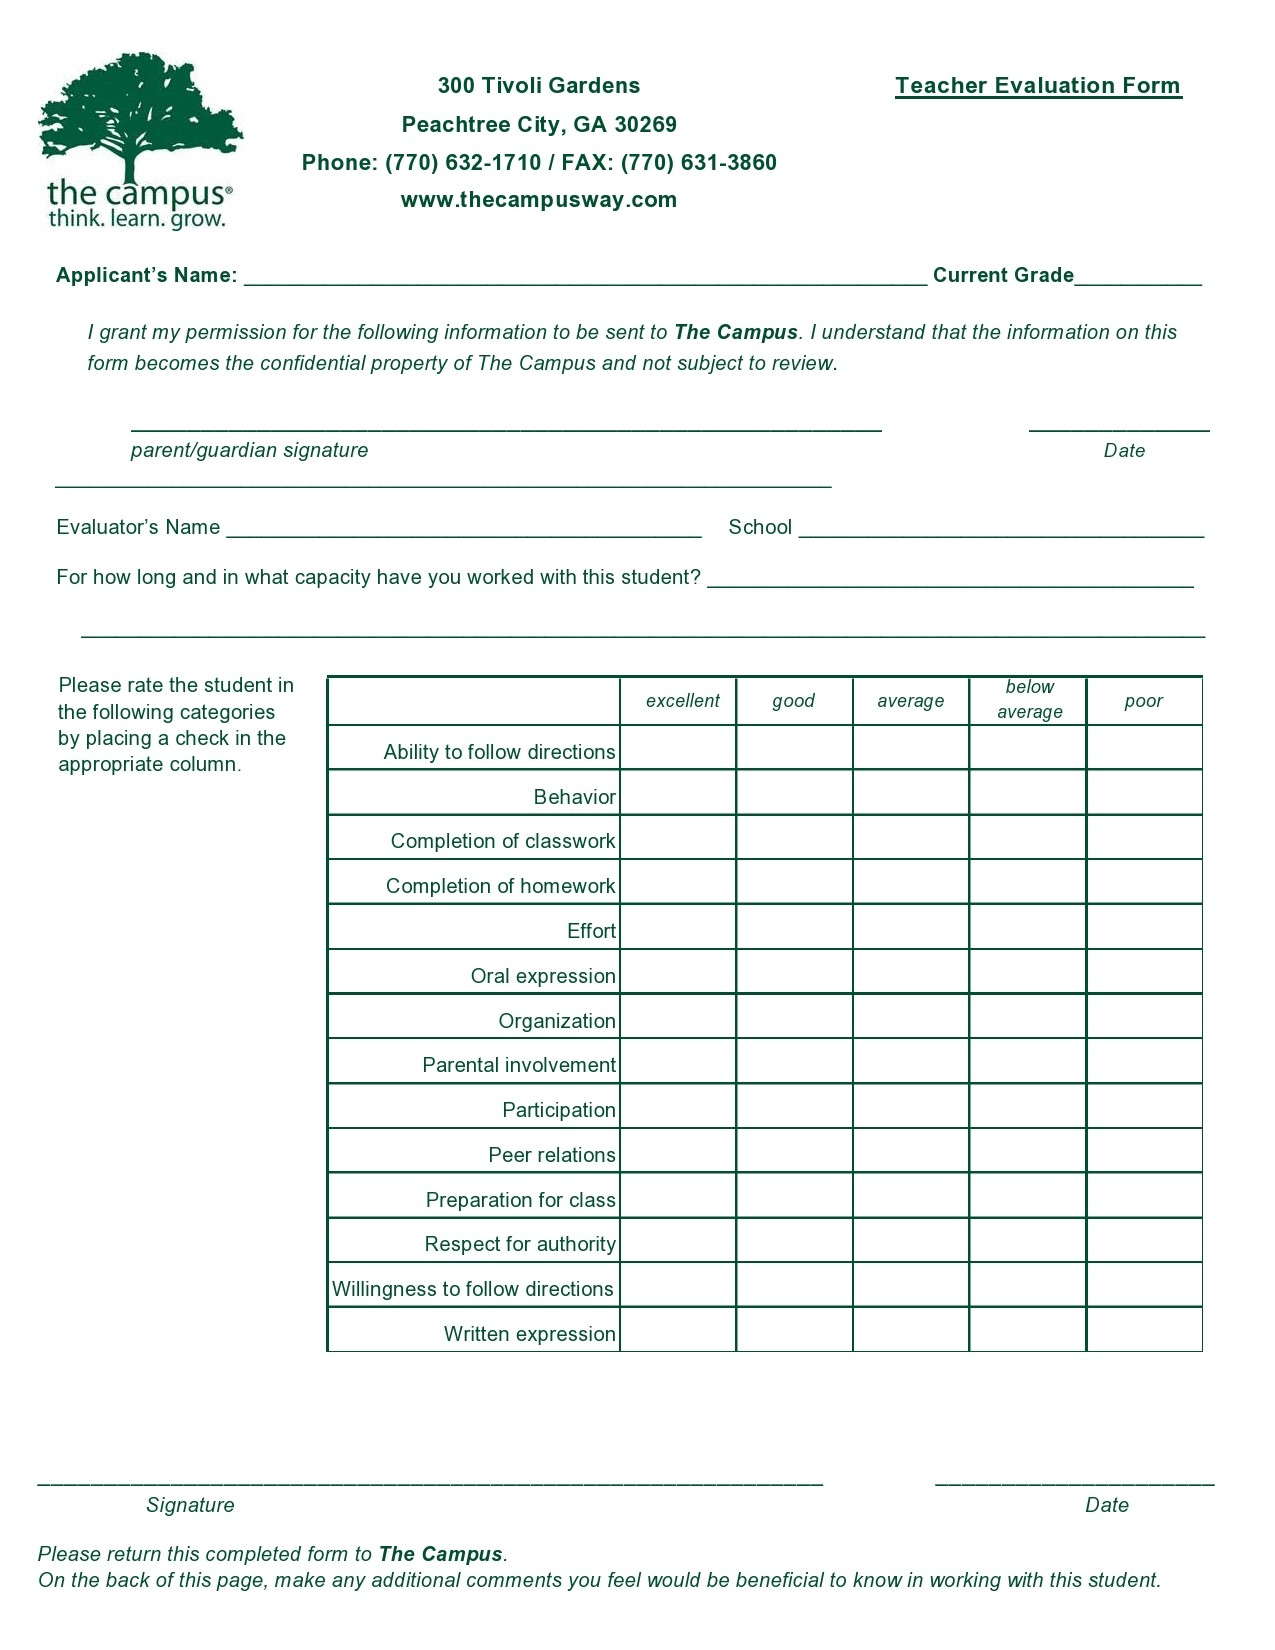 Free teacher evaluation form 50